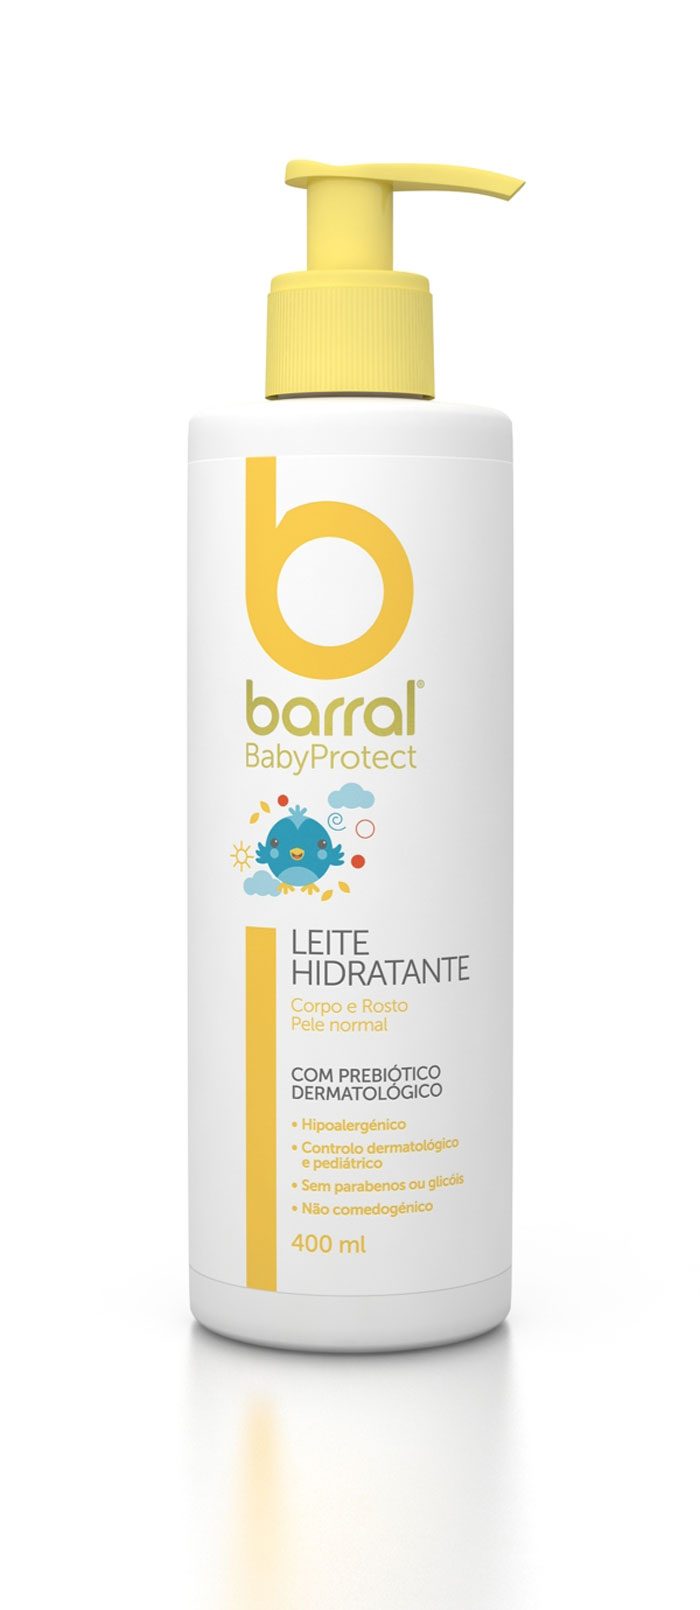 Barral Baby Products The Dieline Packaging Amp Branding